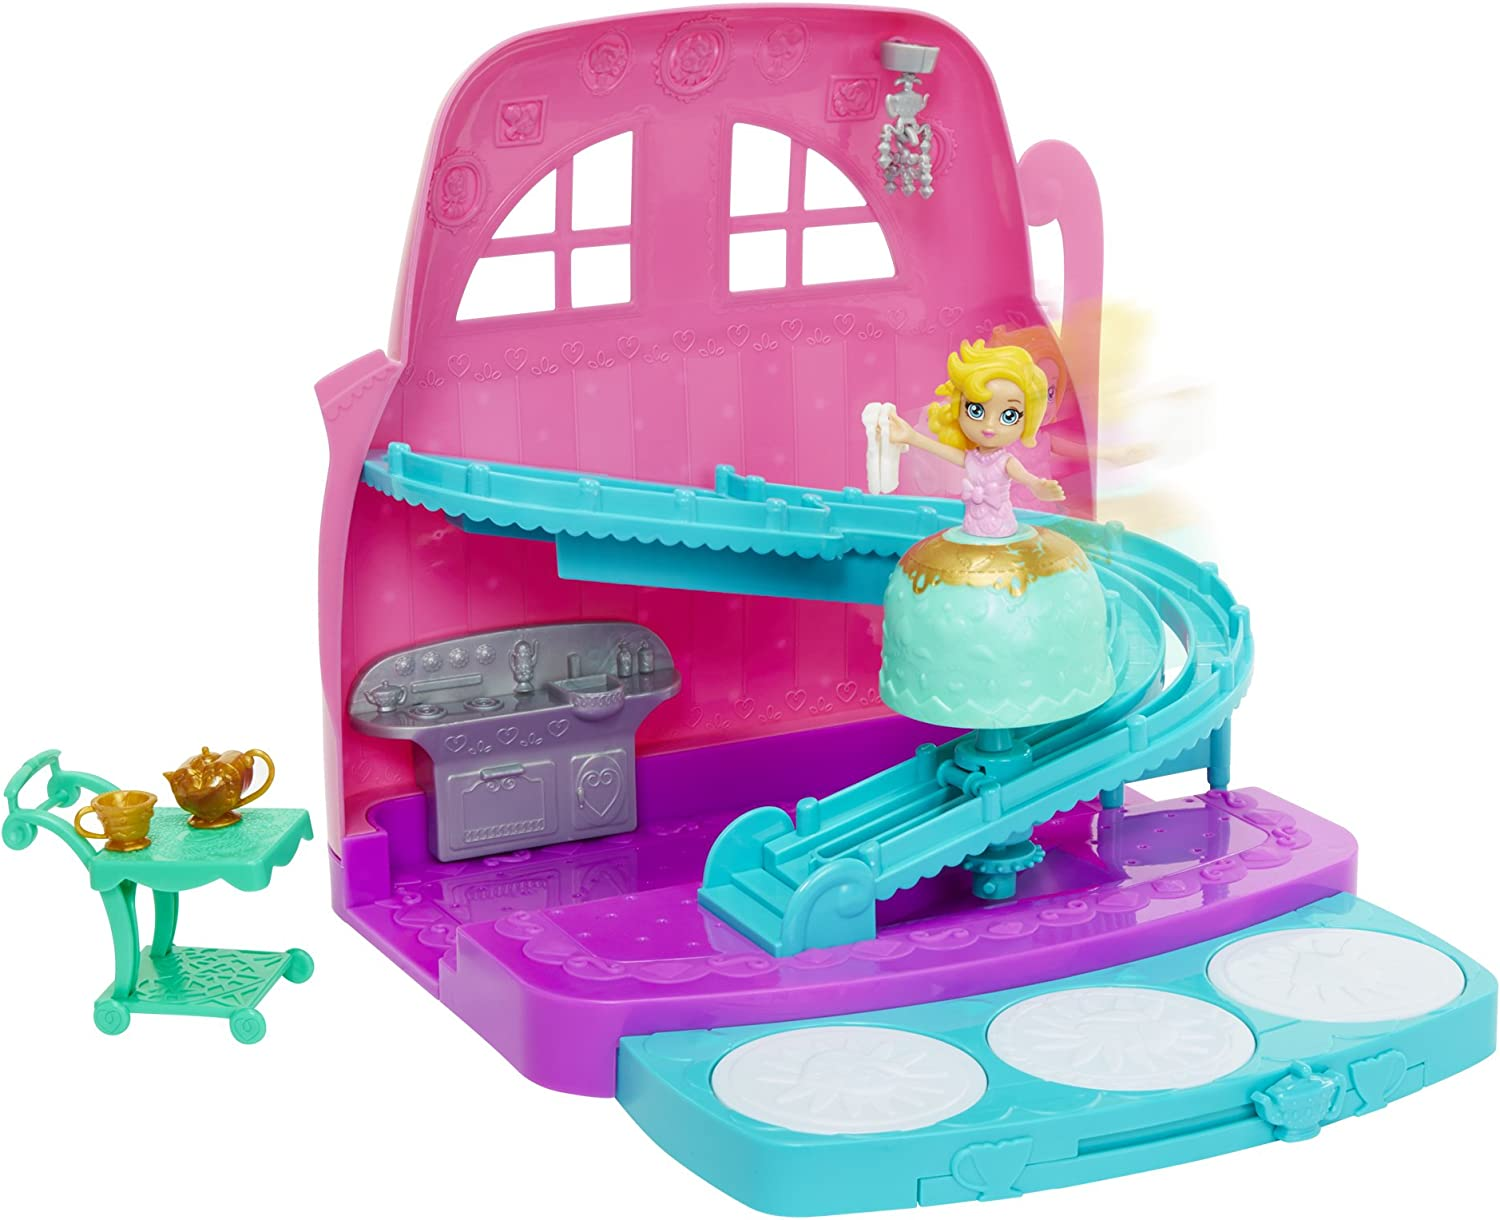 Cuppatinis Spinning Tea Party Playset